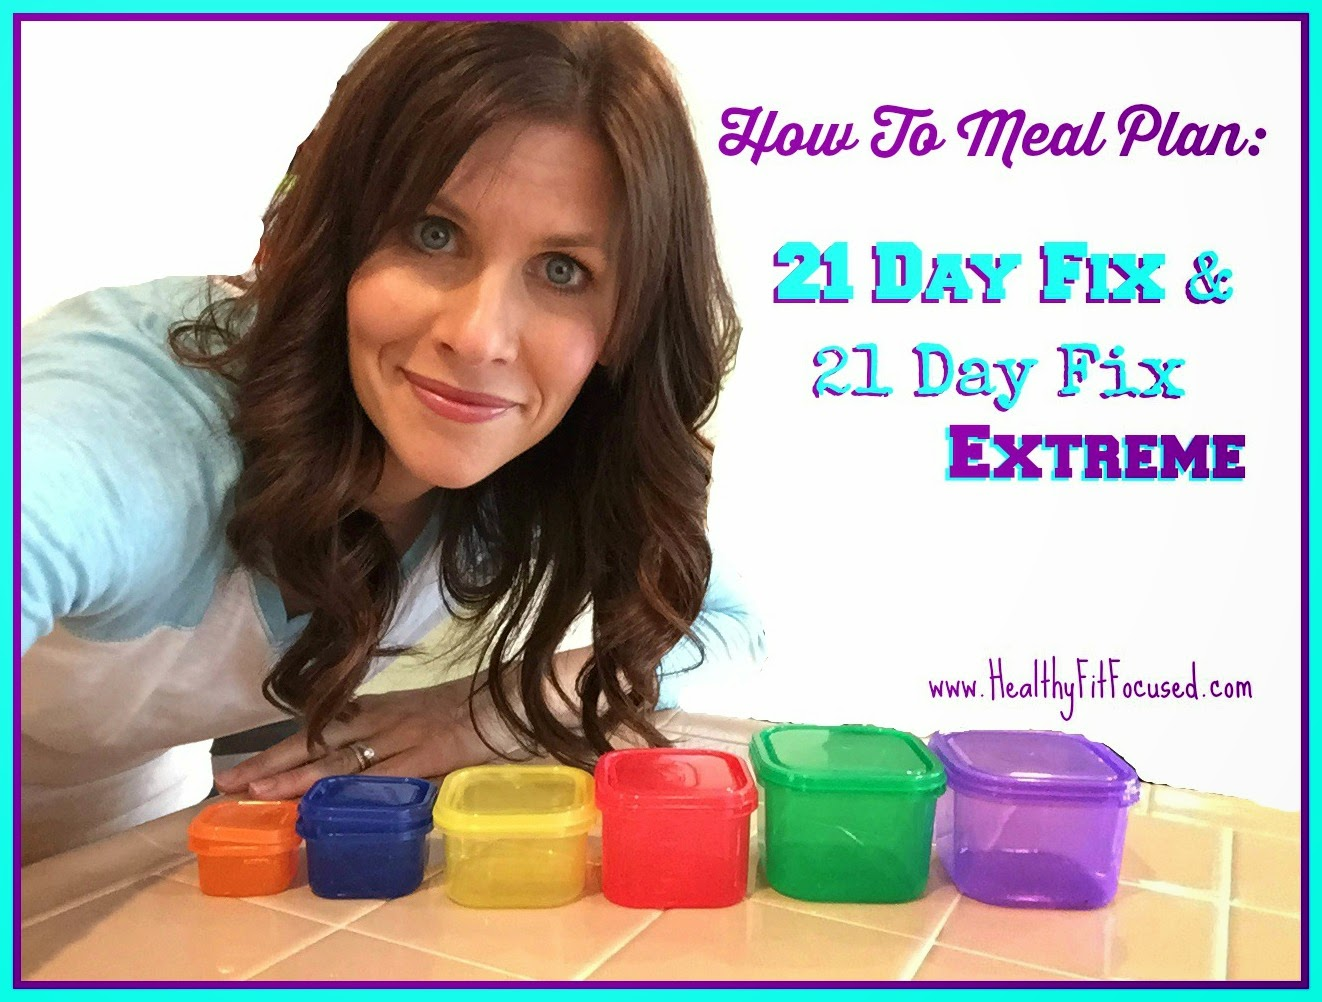 How to Meal Plan for the 21 Day Fix and 21 Day Fix Extreme, Step by Step Guide, www.HealthyFitFocused.com